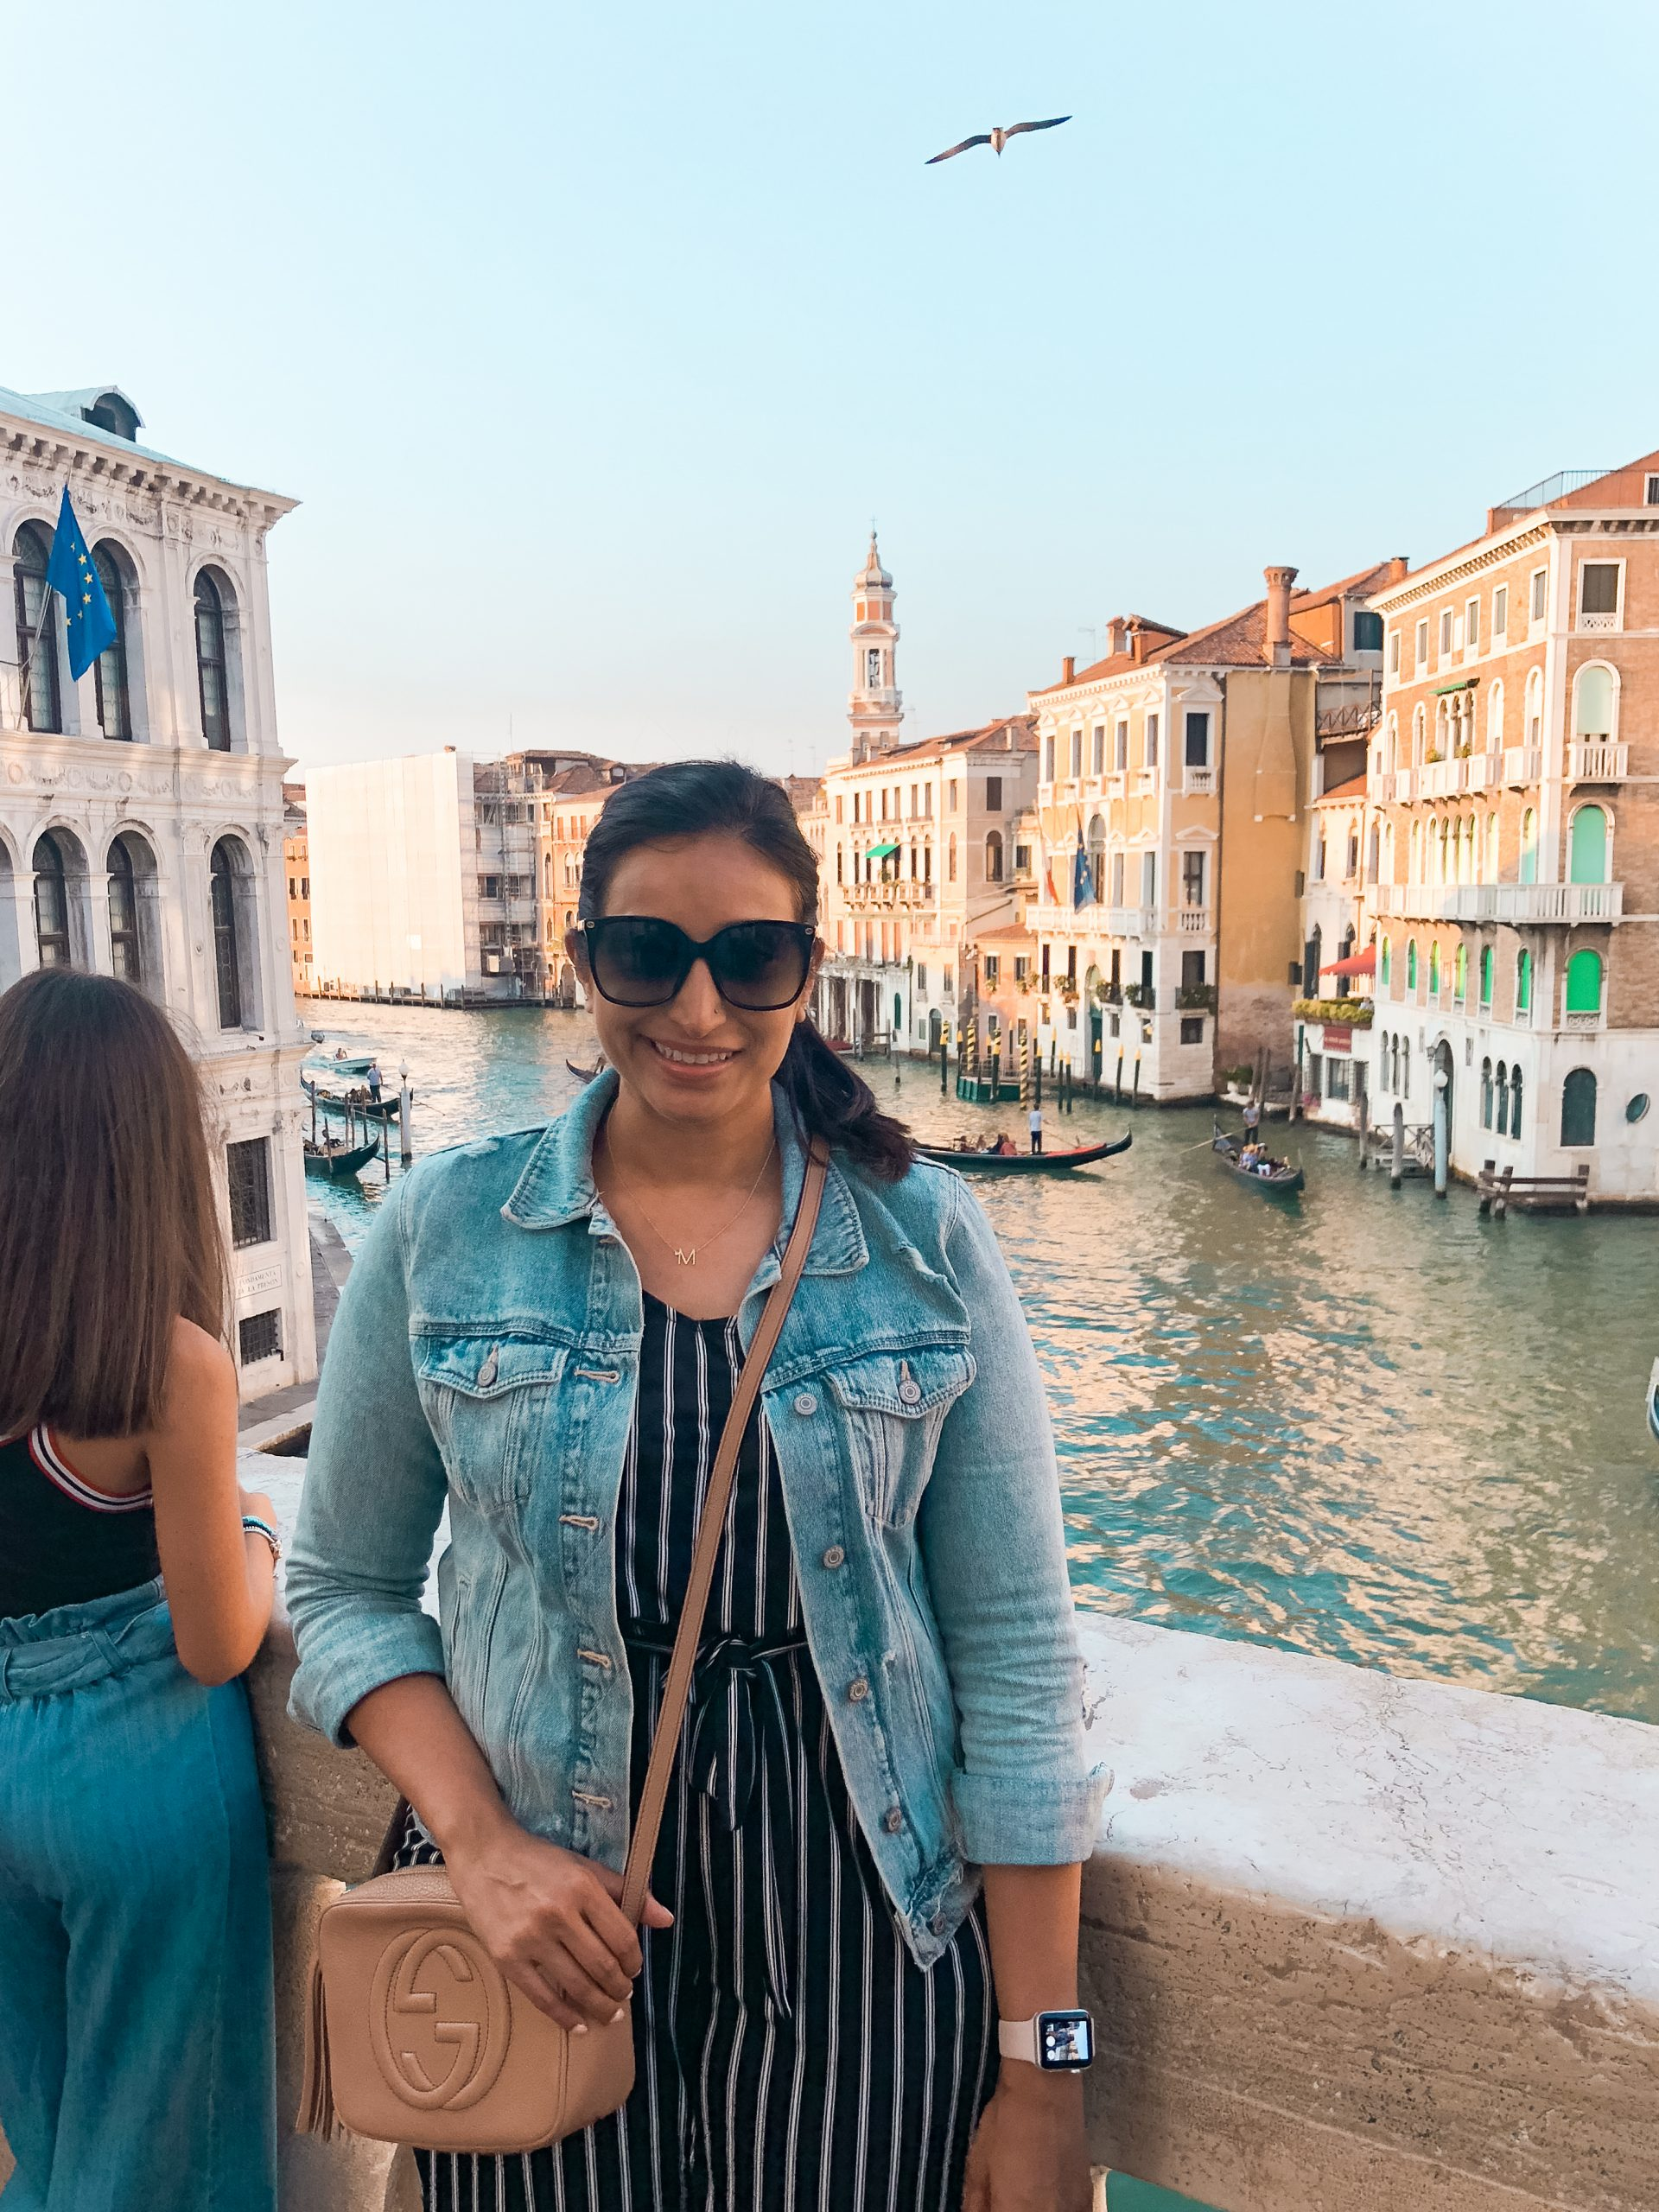 a picture of me with the canals and a gondola in the background